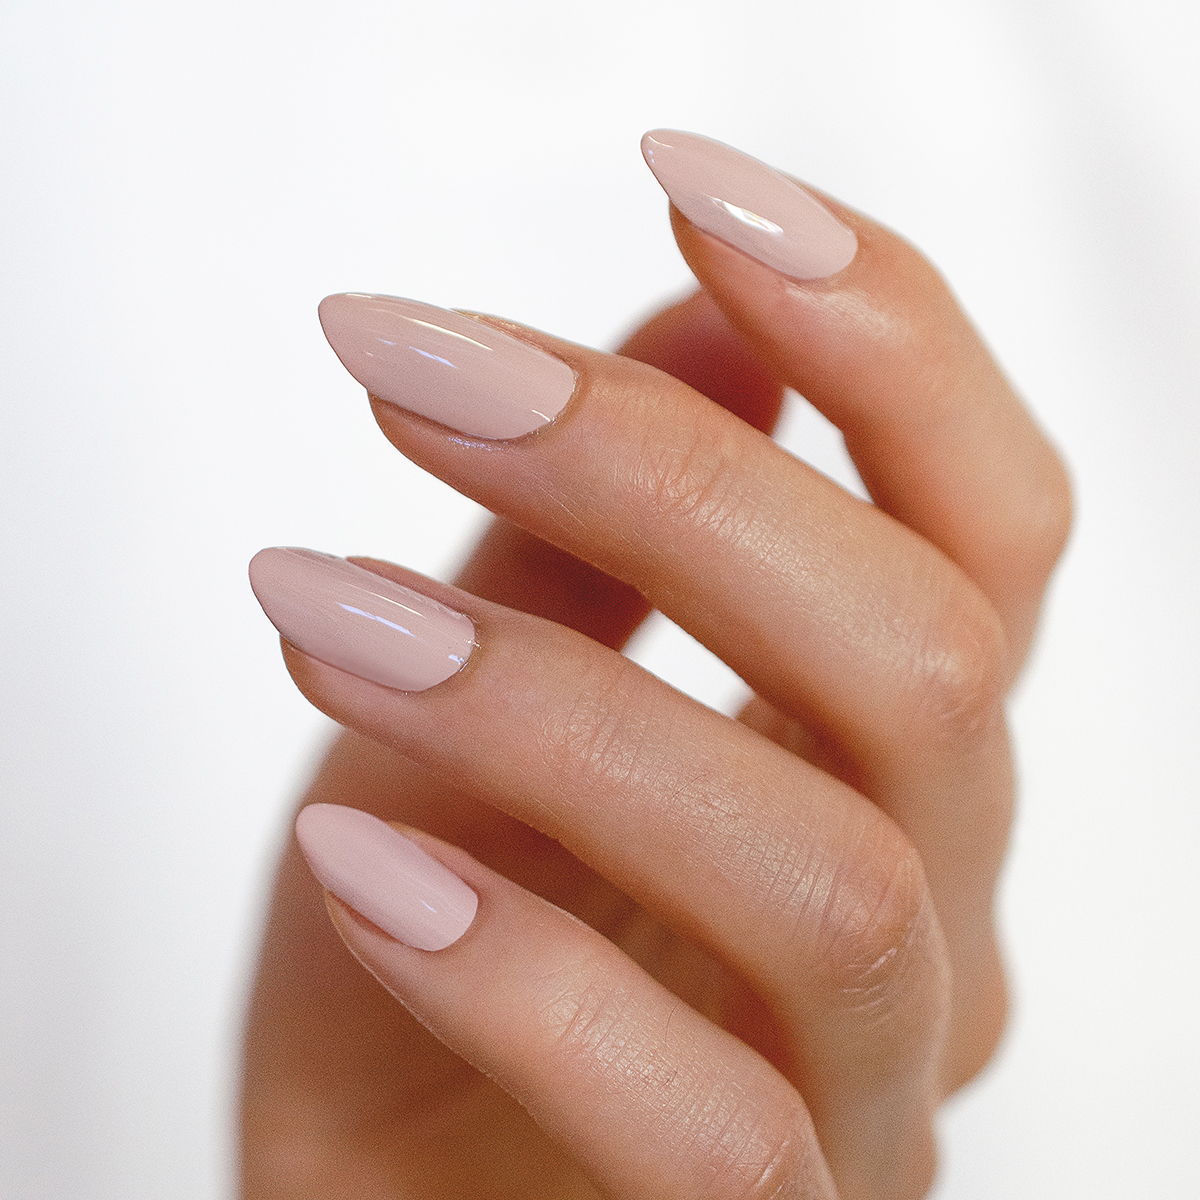 almond shape nails with nude nail polish by sienna